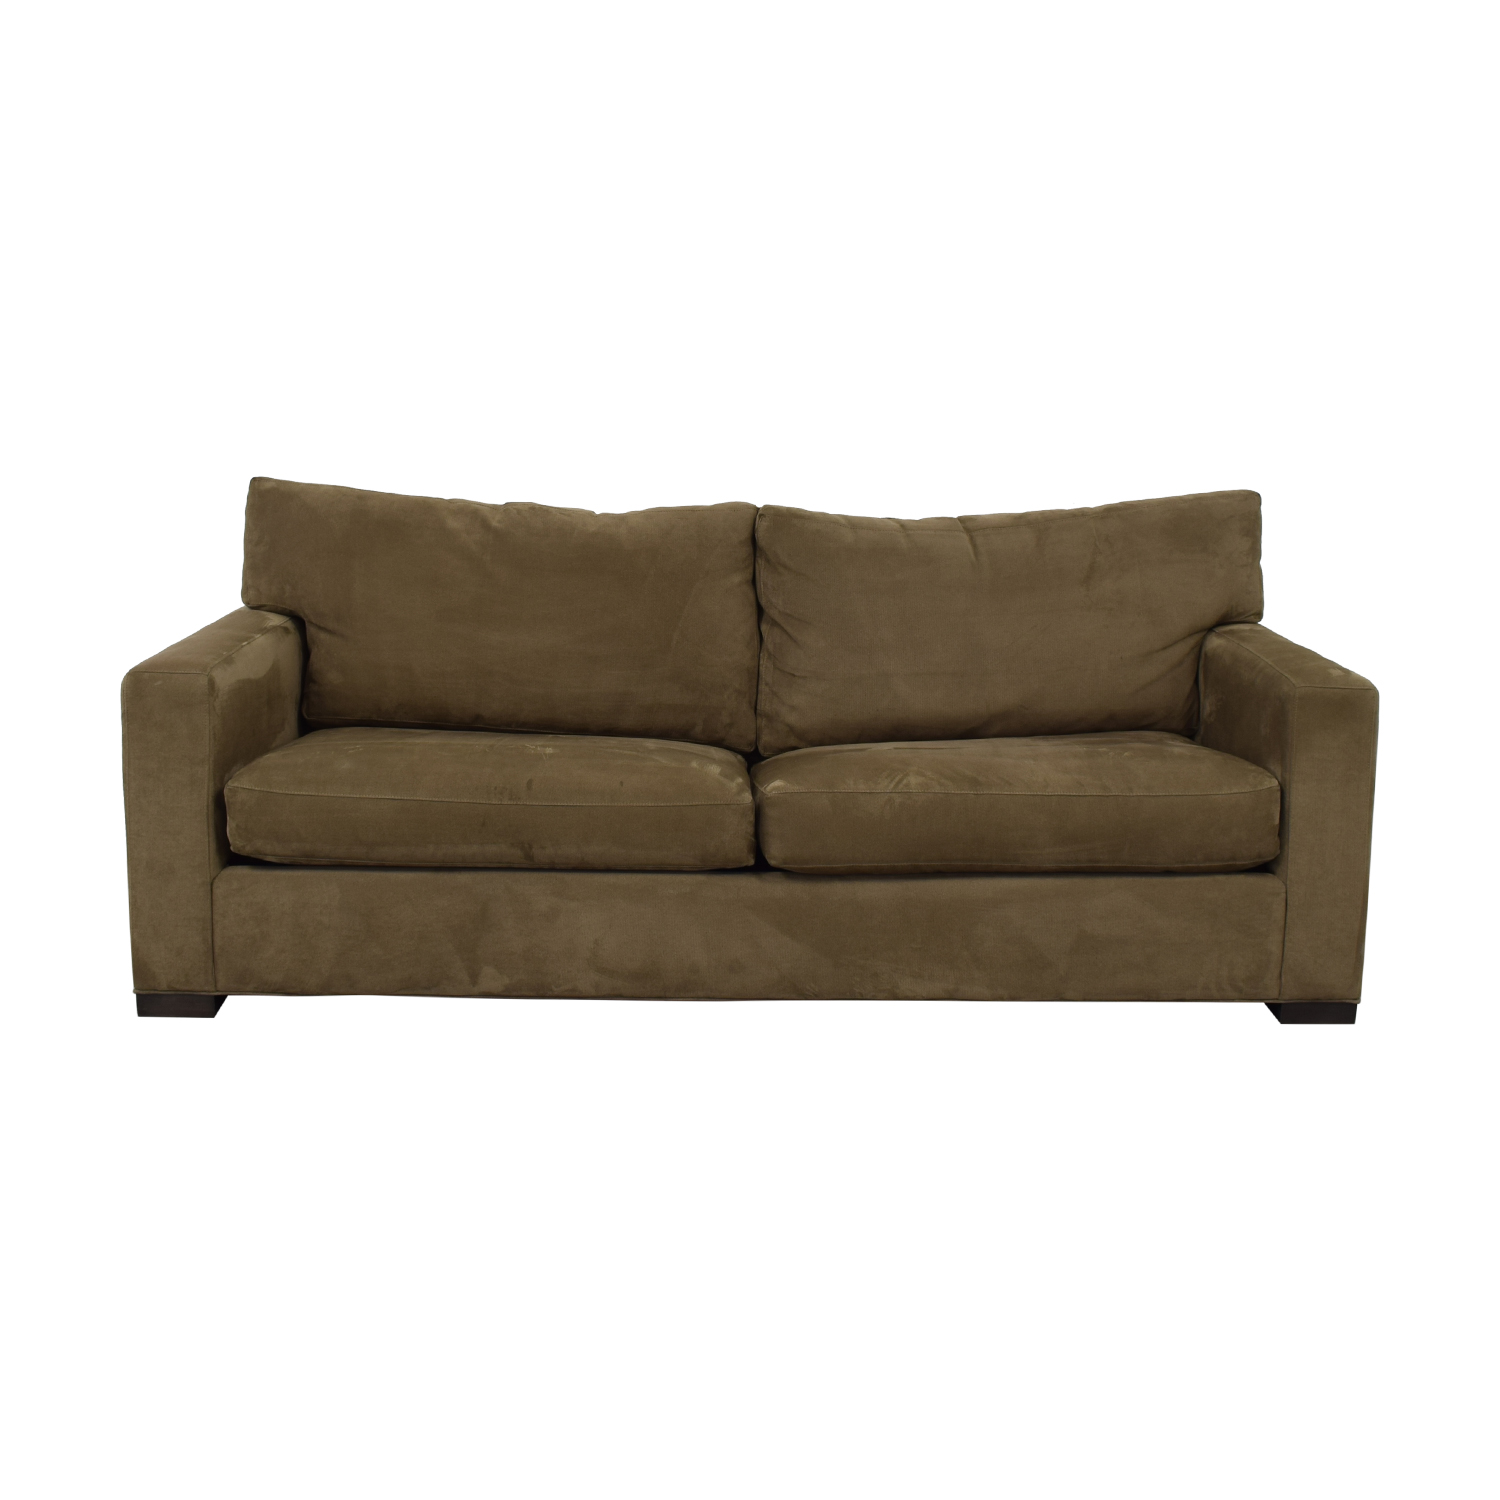 Crate & Barrel Crate & Barrel Axis II Queen Sleeper Sofa price